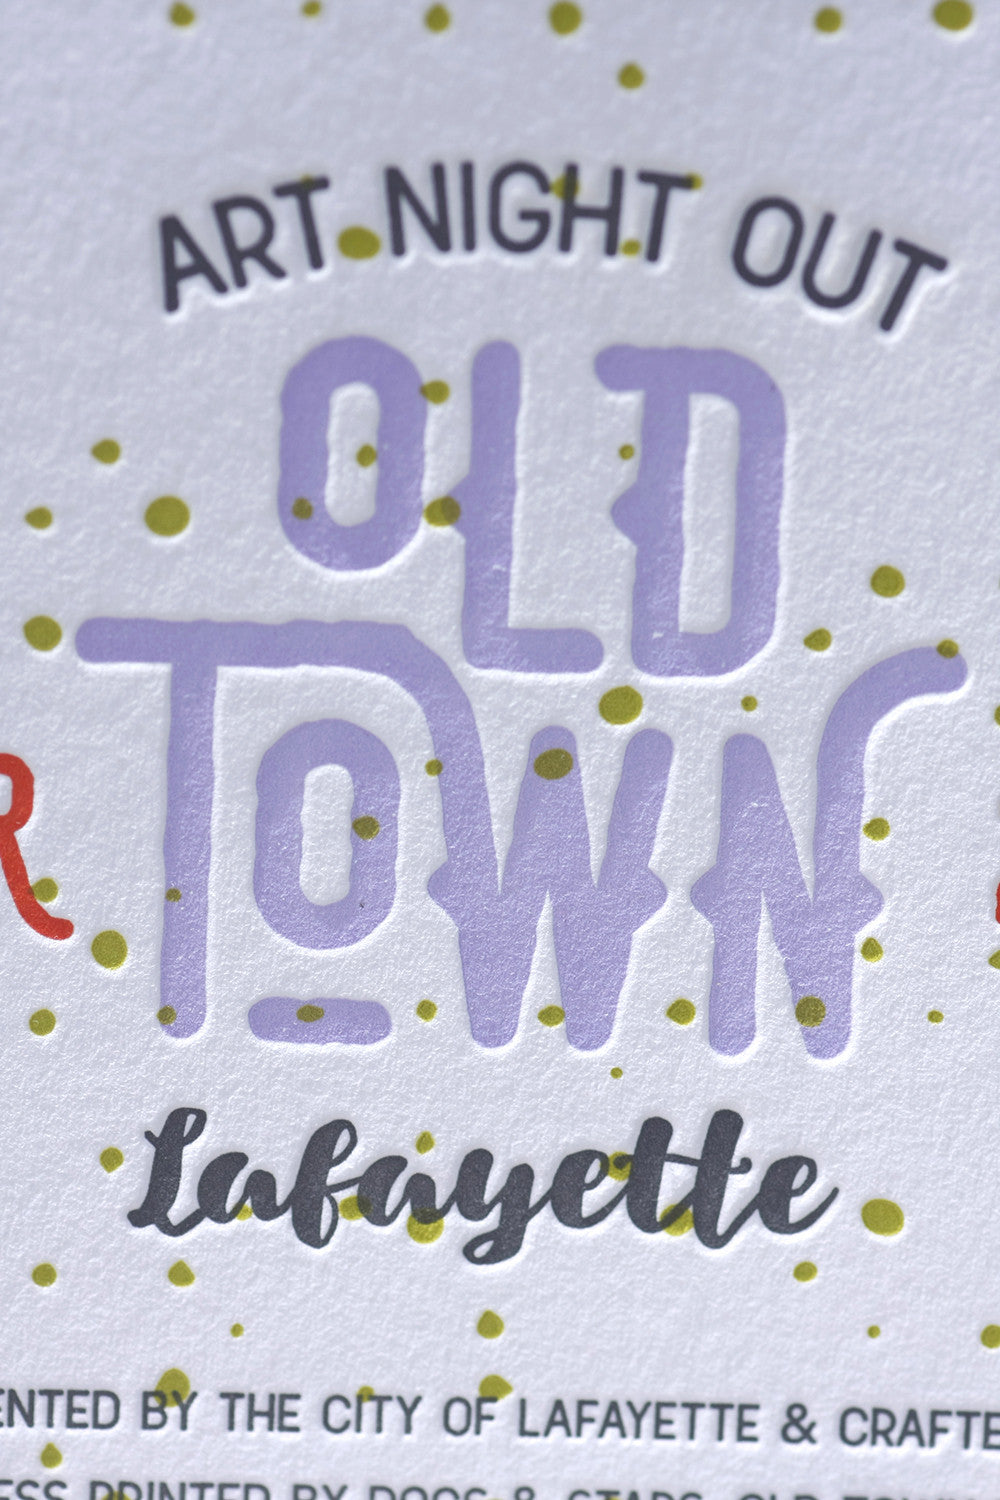 Art Night Out Letterpress Poster Custom Printing Old Town Lafayette